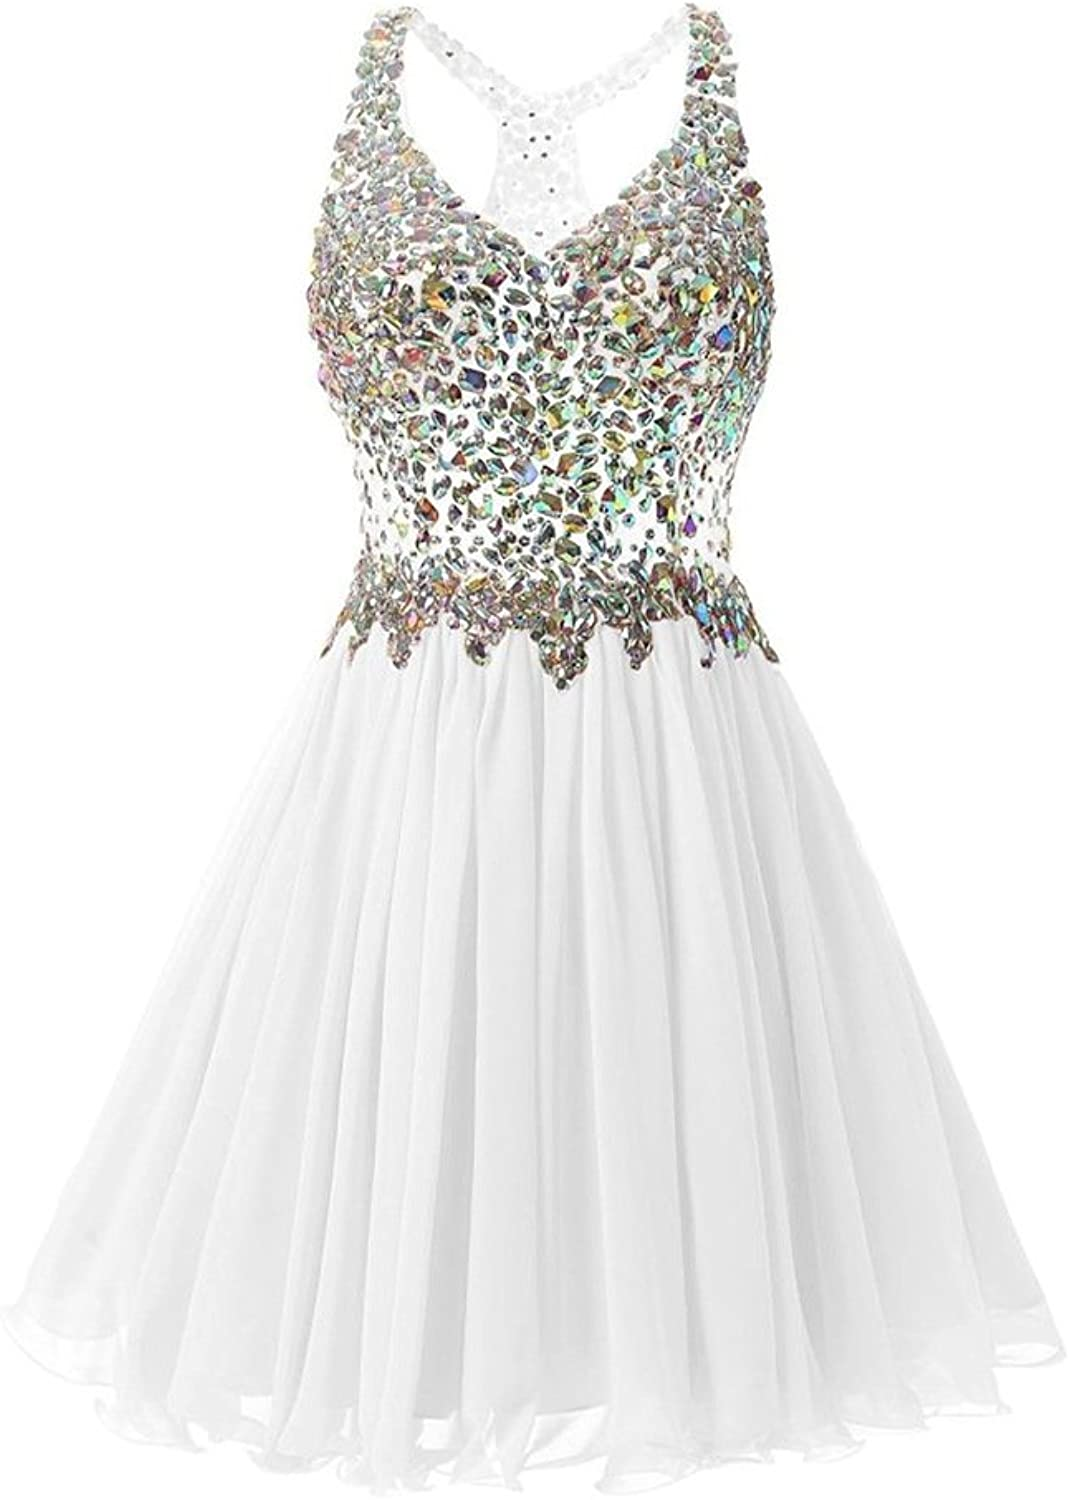 Y&C Women's Homecoming Dresses for Girl Evening Party Wedding Short Prom Gowns